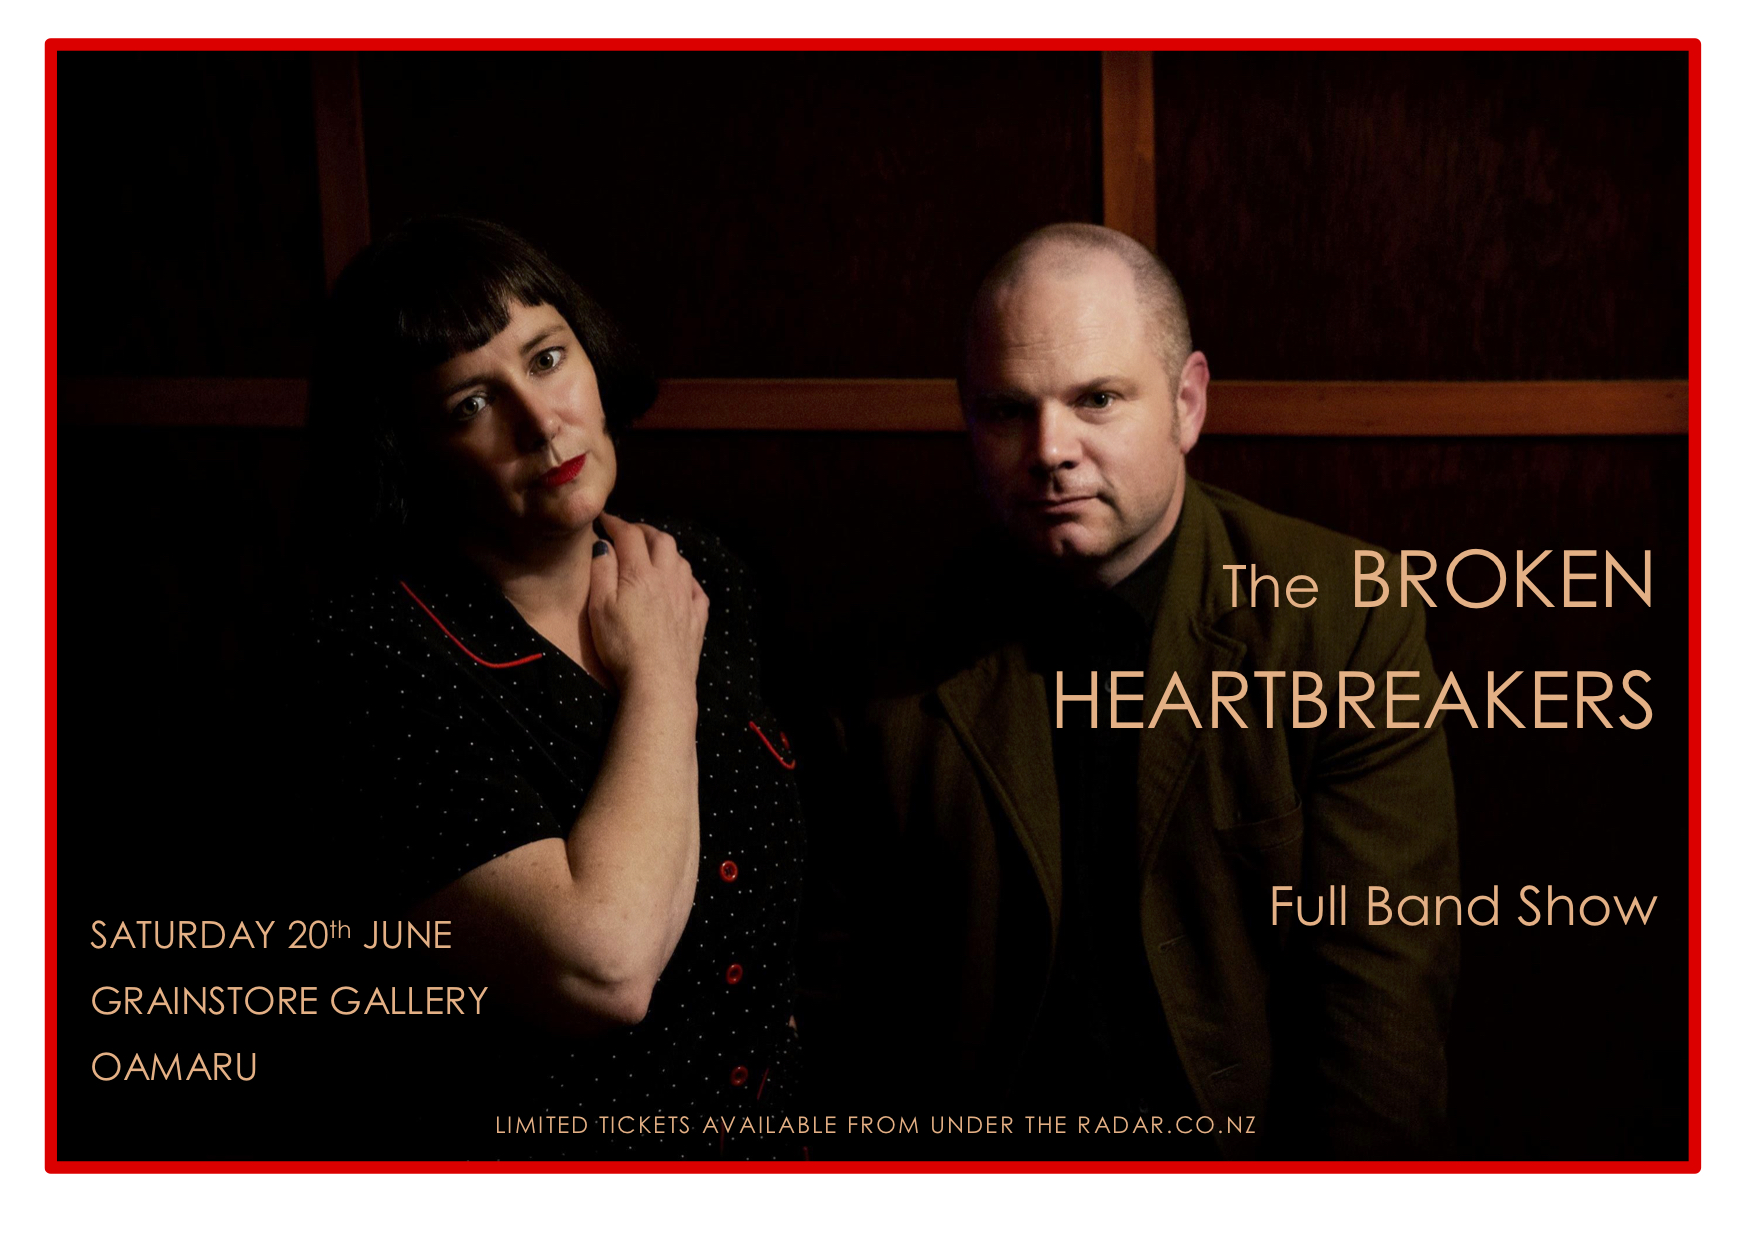 The Broken Heartbreakers EARLY SHOW Full Band